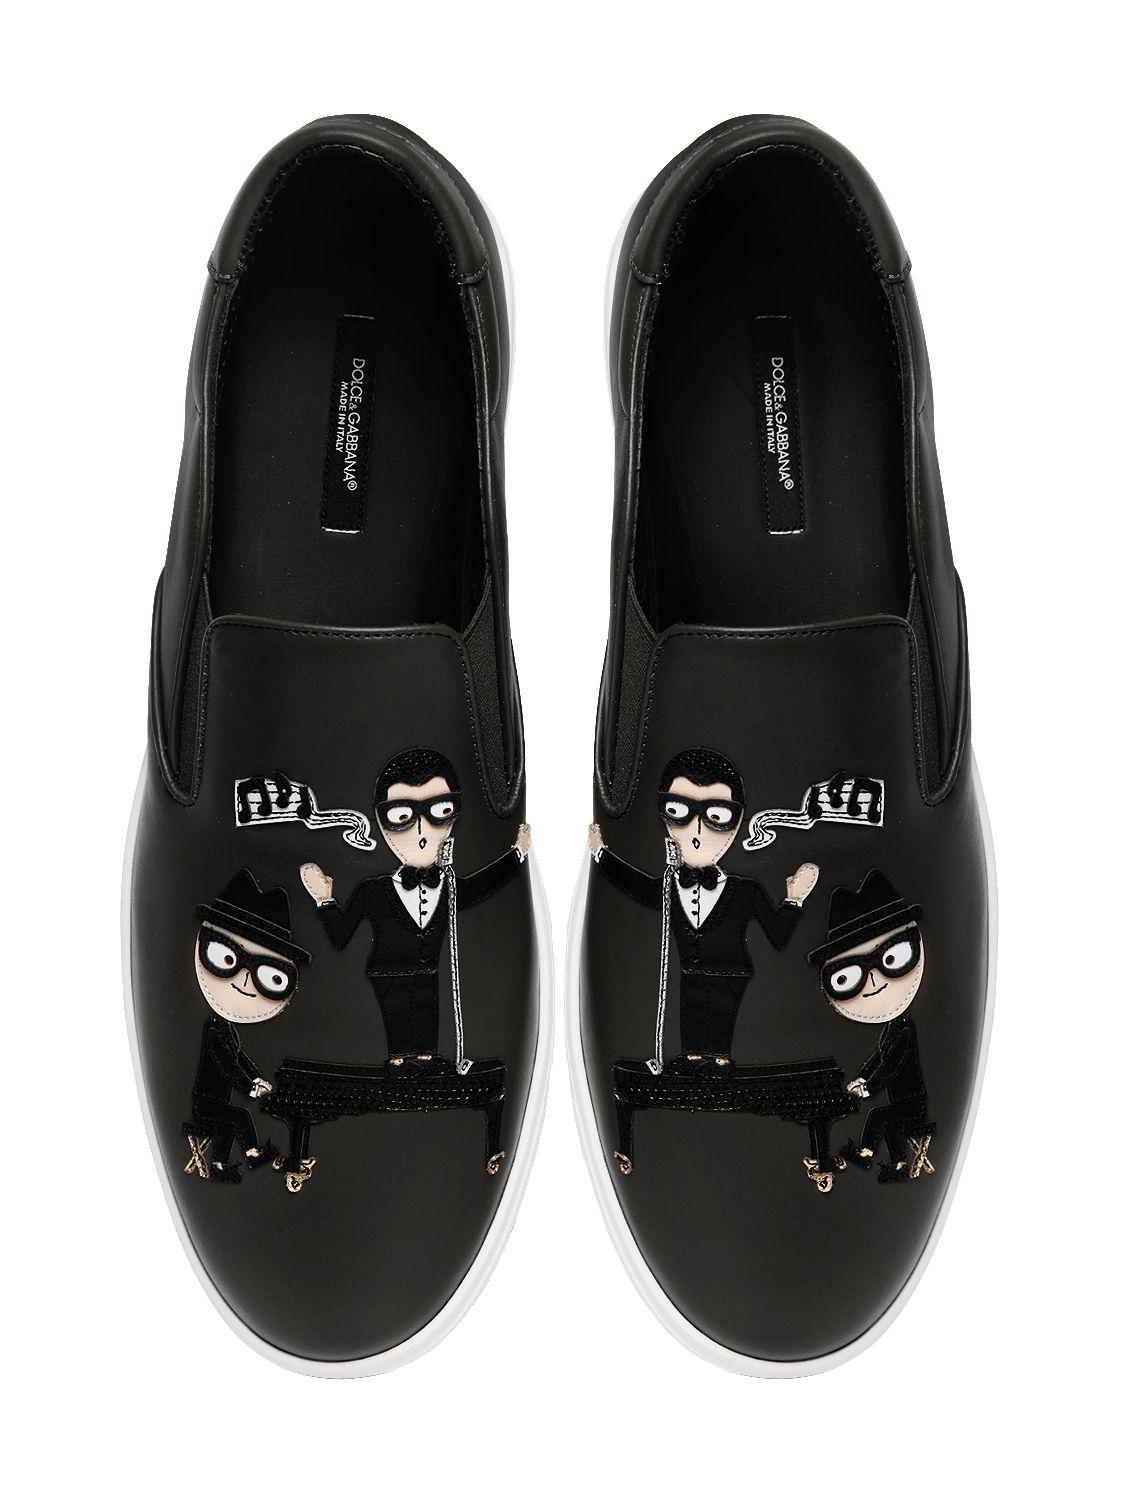 Dolce & Gabbana Designers Patch Leather Slip-on Sneakers ...